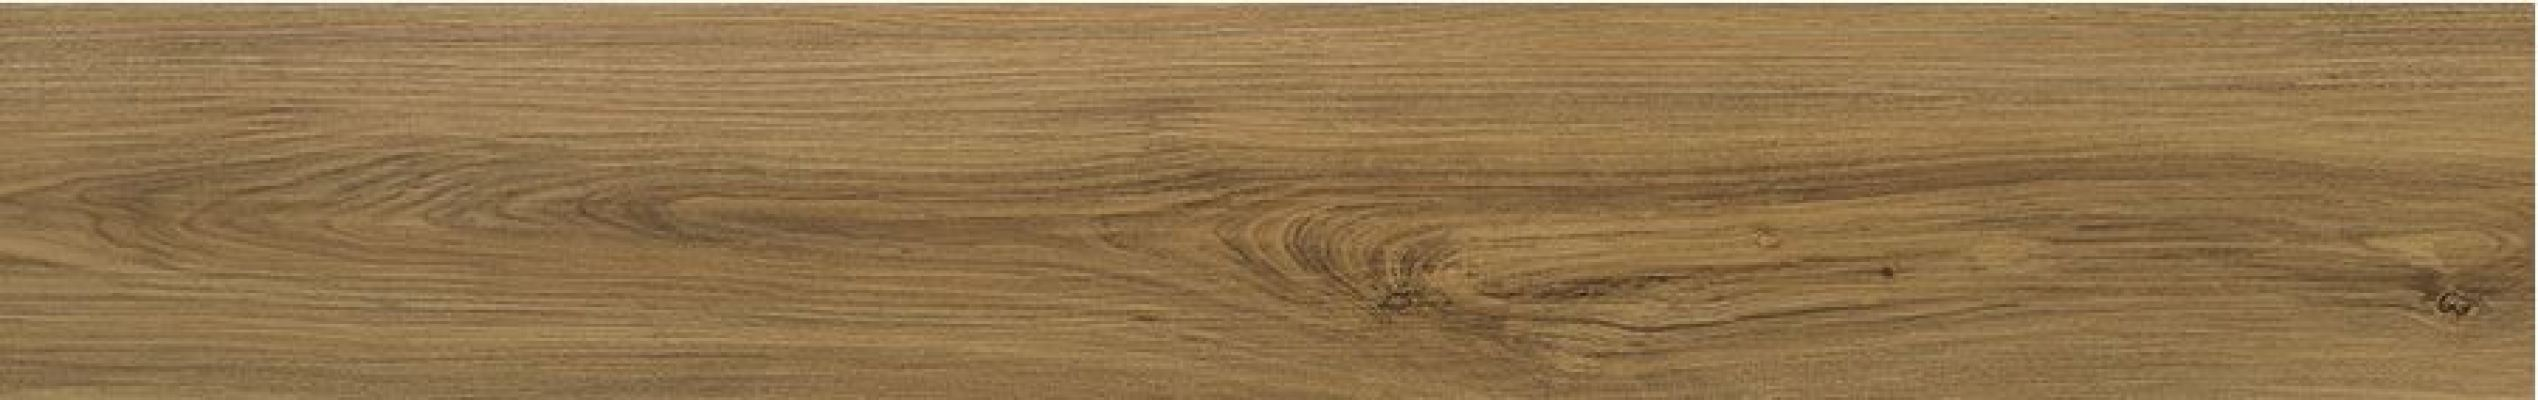 EURO-S 4MM DB4-2509CS SWEDISH YELLOW BIRCH